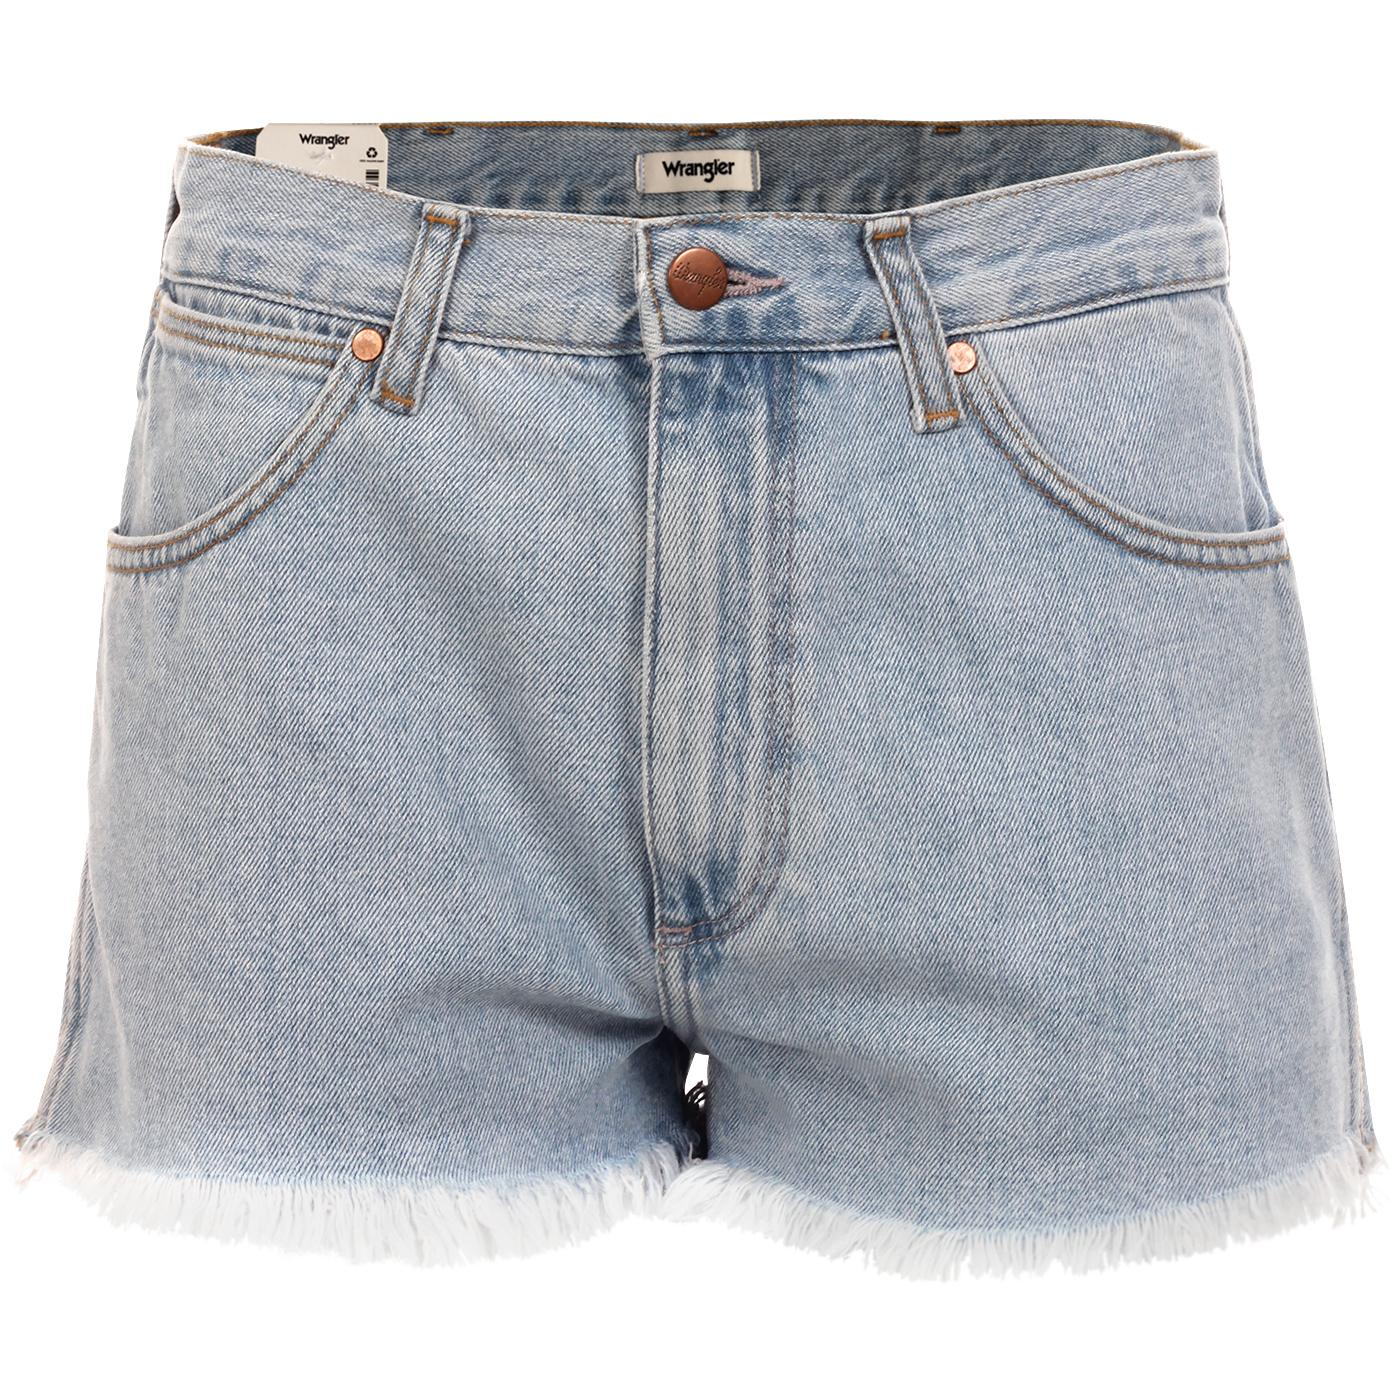 WRANGLER Women's Retro 70s Denim Festival Shorts